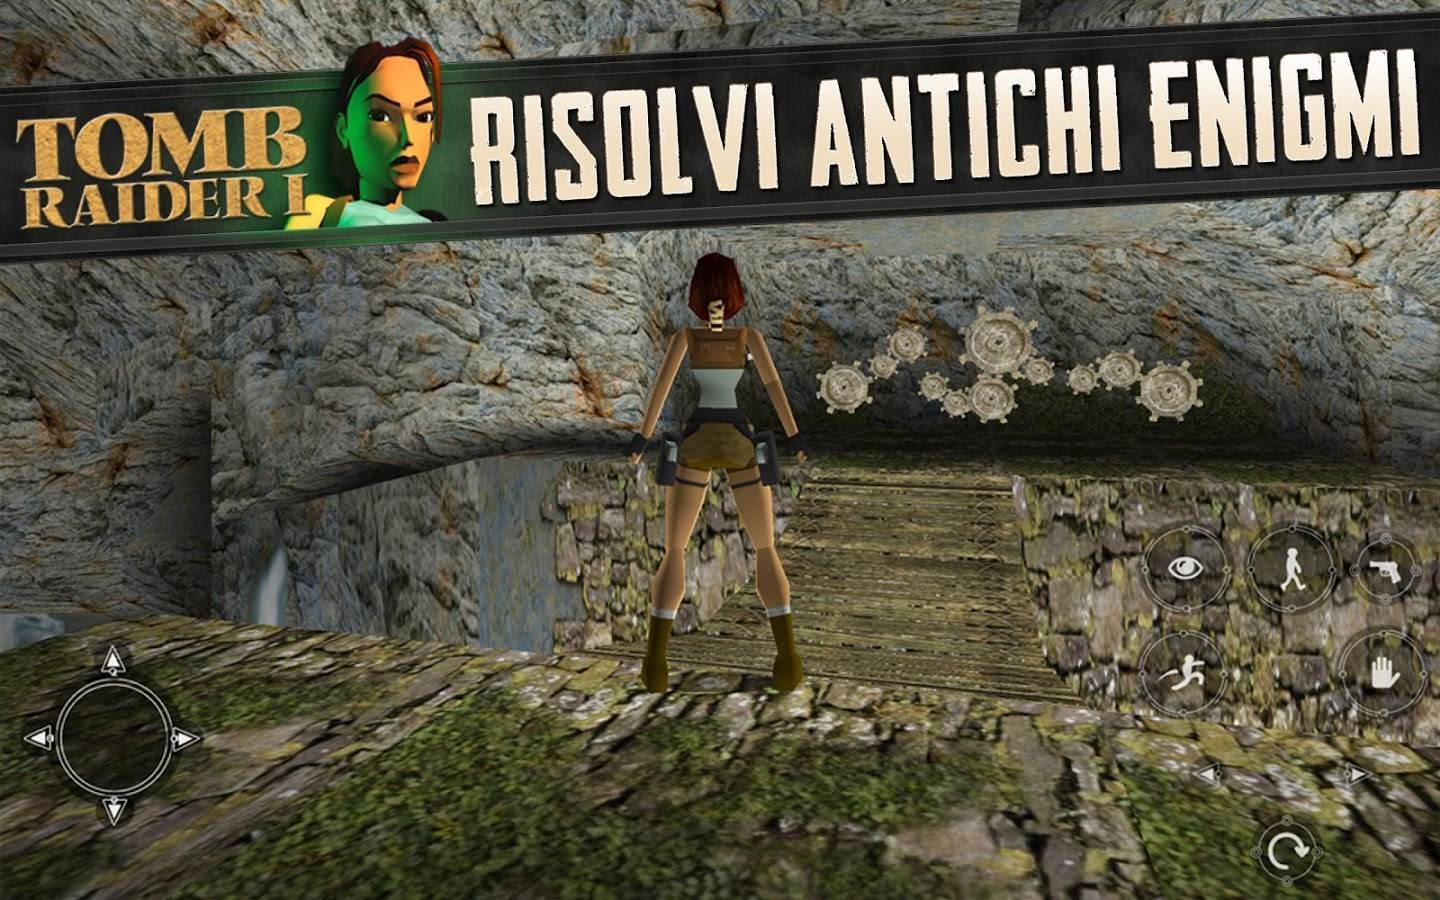 Tomb Raider sbarca su Google Play